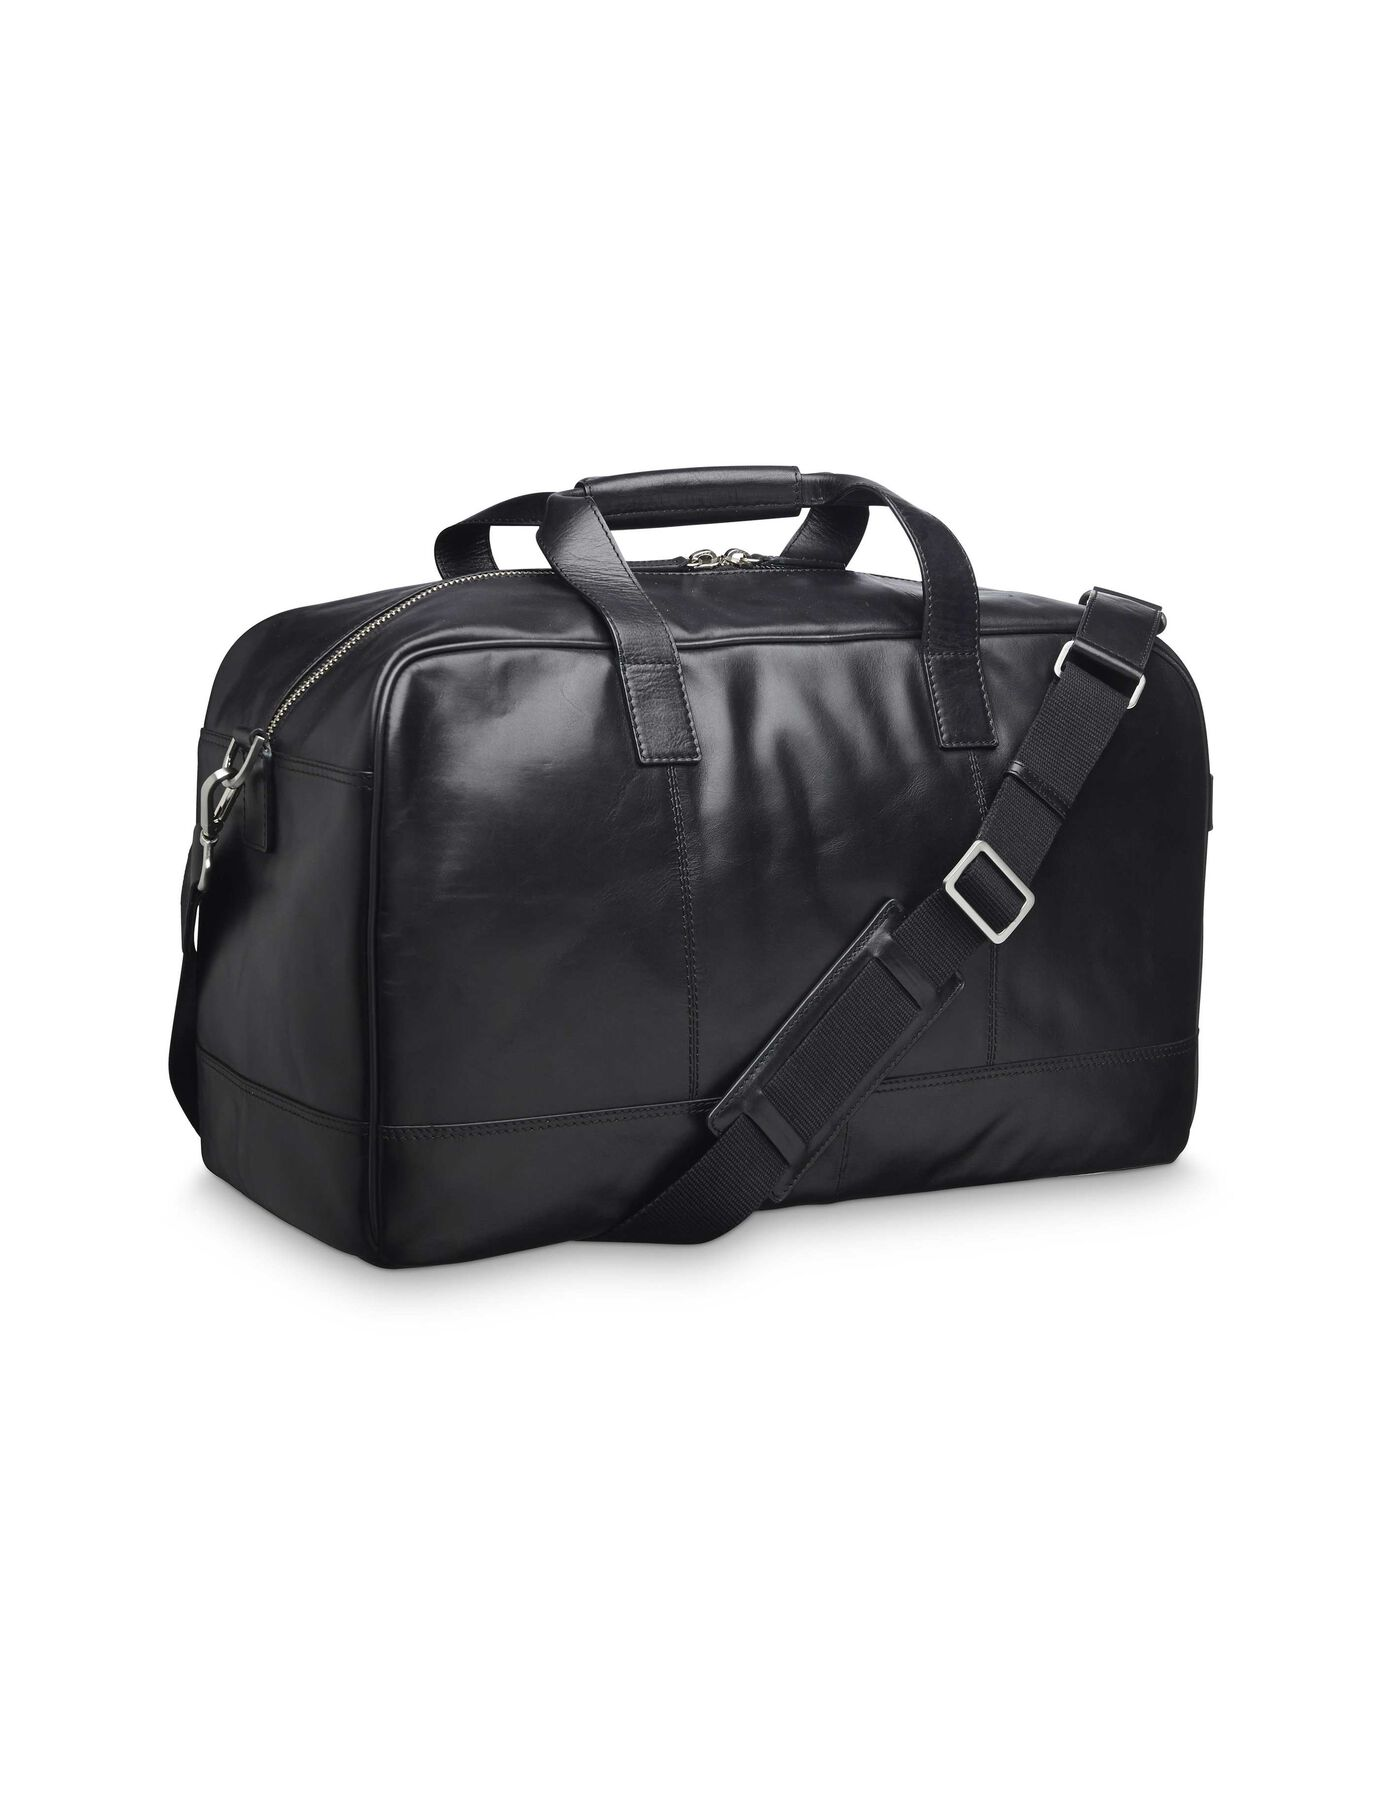 MAISINA weekend bag in Black from Tiger of Sweden